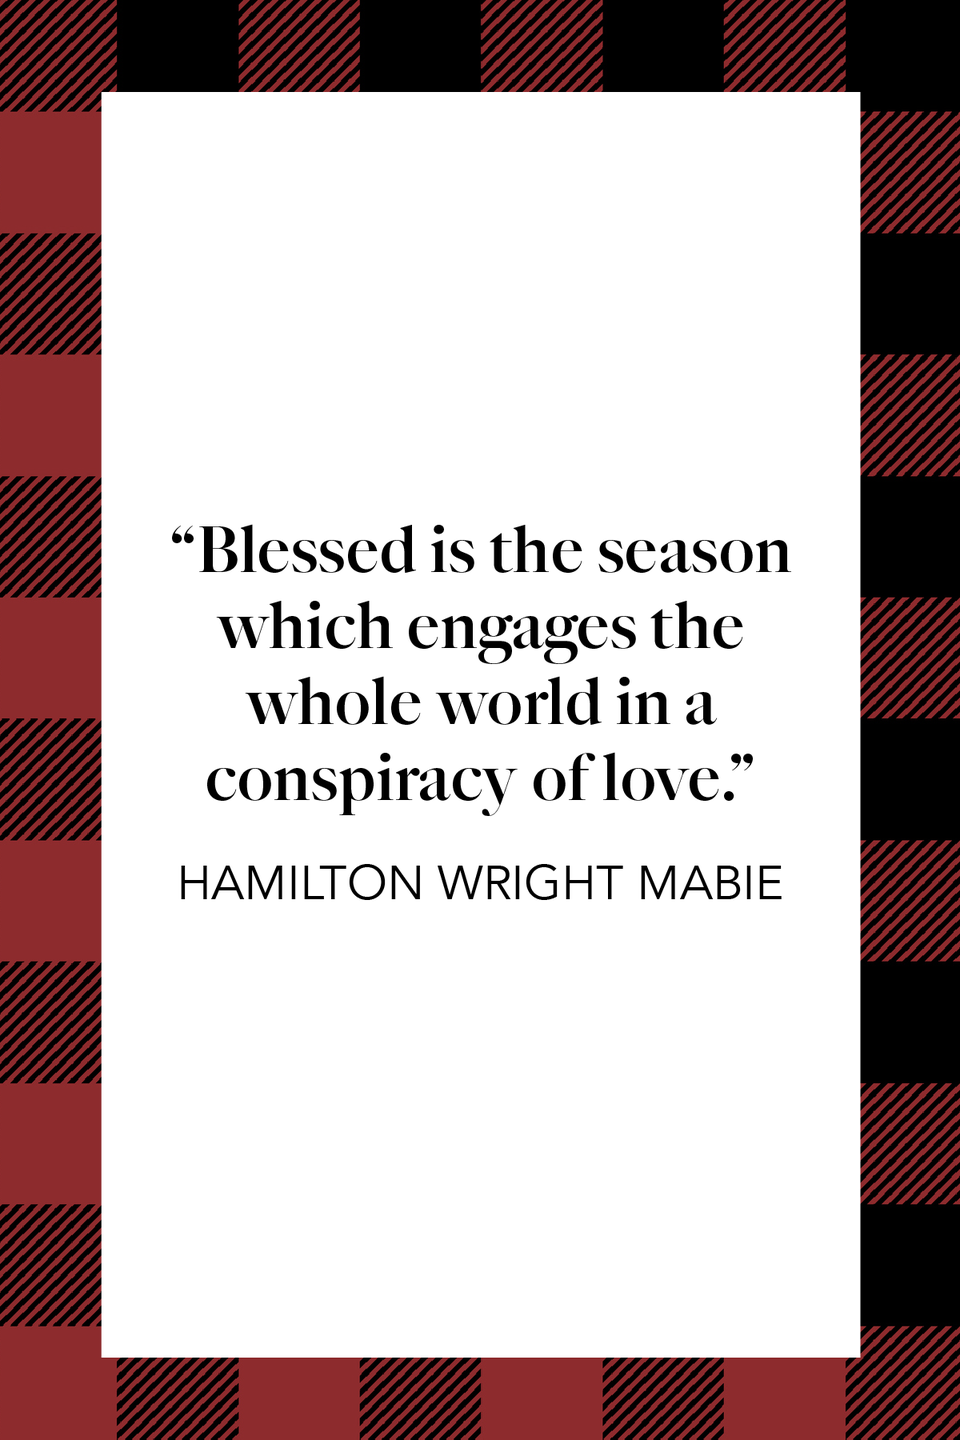 "<p>American essayist Hamilton Wright Mabie wrote about the holiday season, ""Blessed is the season which engages the whole world in a conspiracy of love"" in his book <em><a href=""https://www.amazon.com/My-Study-Fire-Hamilton-lecturer/dp/1539906388?tag=syn-yahoo-20&ascsubtag=%5Bartid%7C10072.g.34536312%5Bsrc%7Cyahoo-us"" rel=""nofollow noopener"" target=""_blank"" data-ylk=""slk:My Study Fire: First Series"" class=""link rapid-noclick-resp"">My Study Fire: First Series</a>.</em></p>"